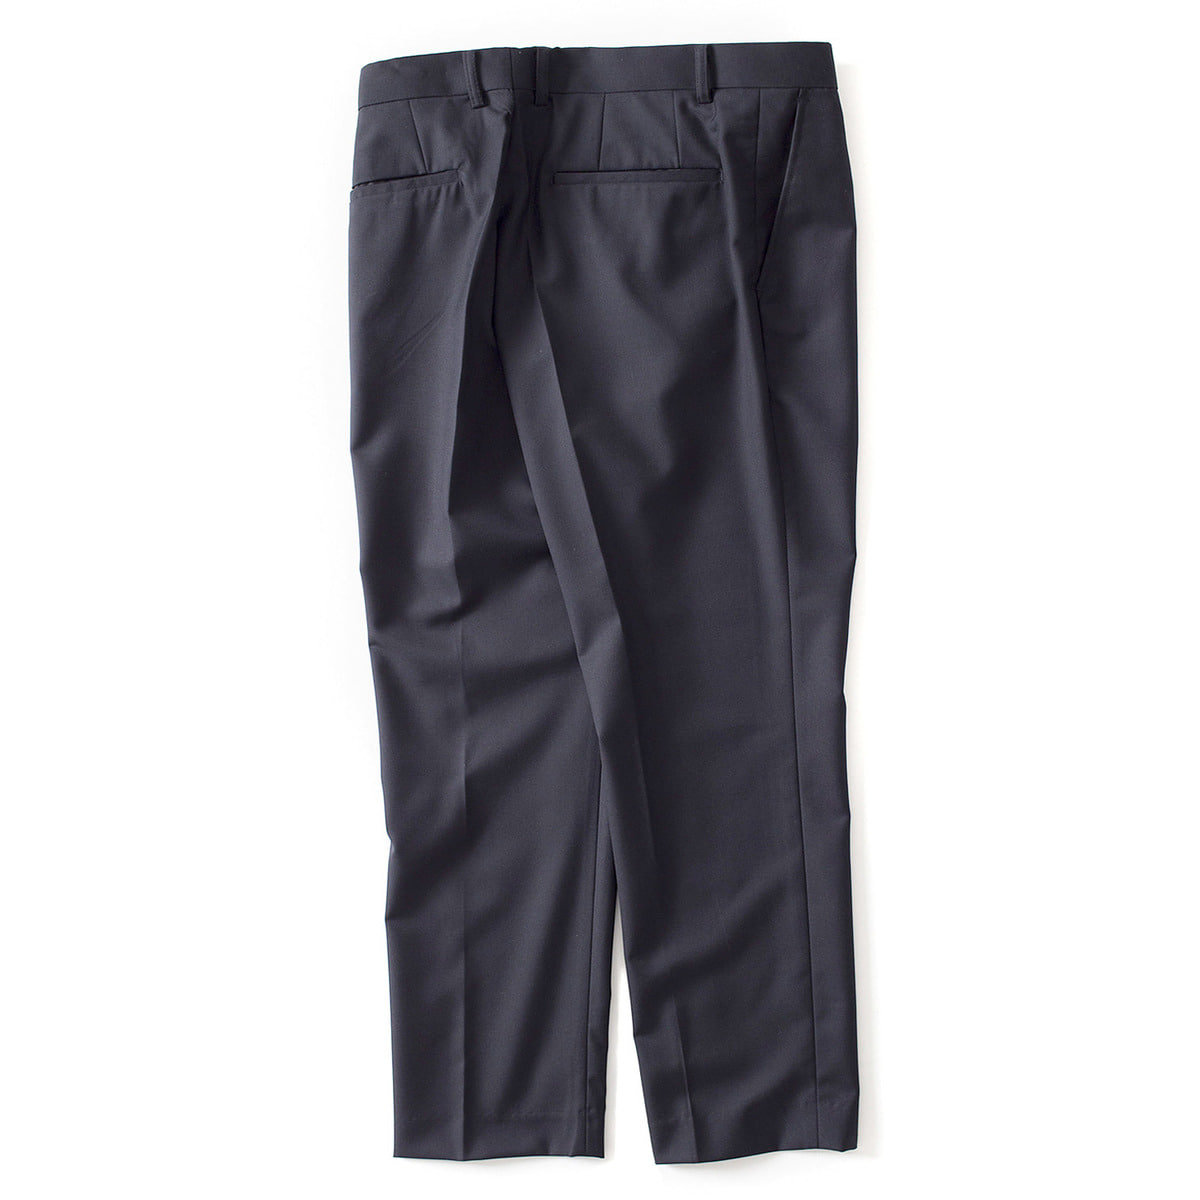 [BIRTHDAYSUIT] DAILY SUIT PANTS 'DARK NAVY'